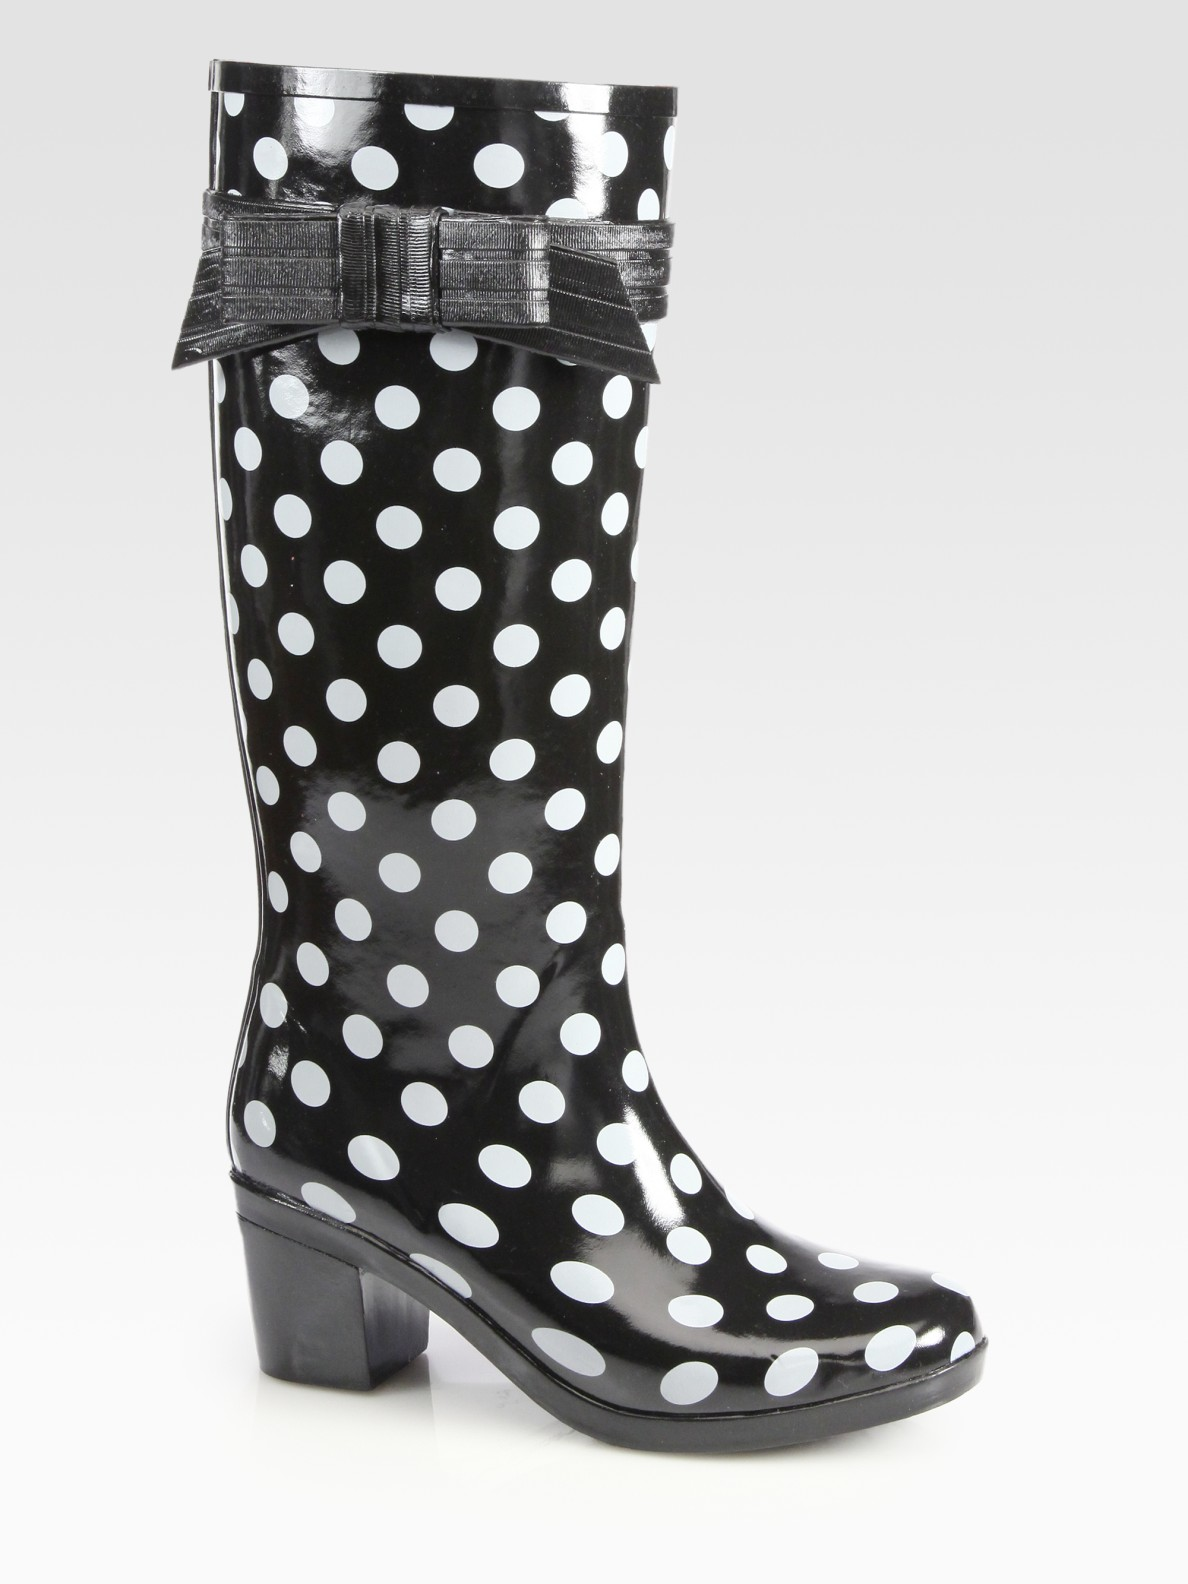 Polka Dot Rain Boots - Cr Boot